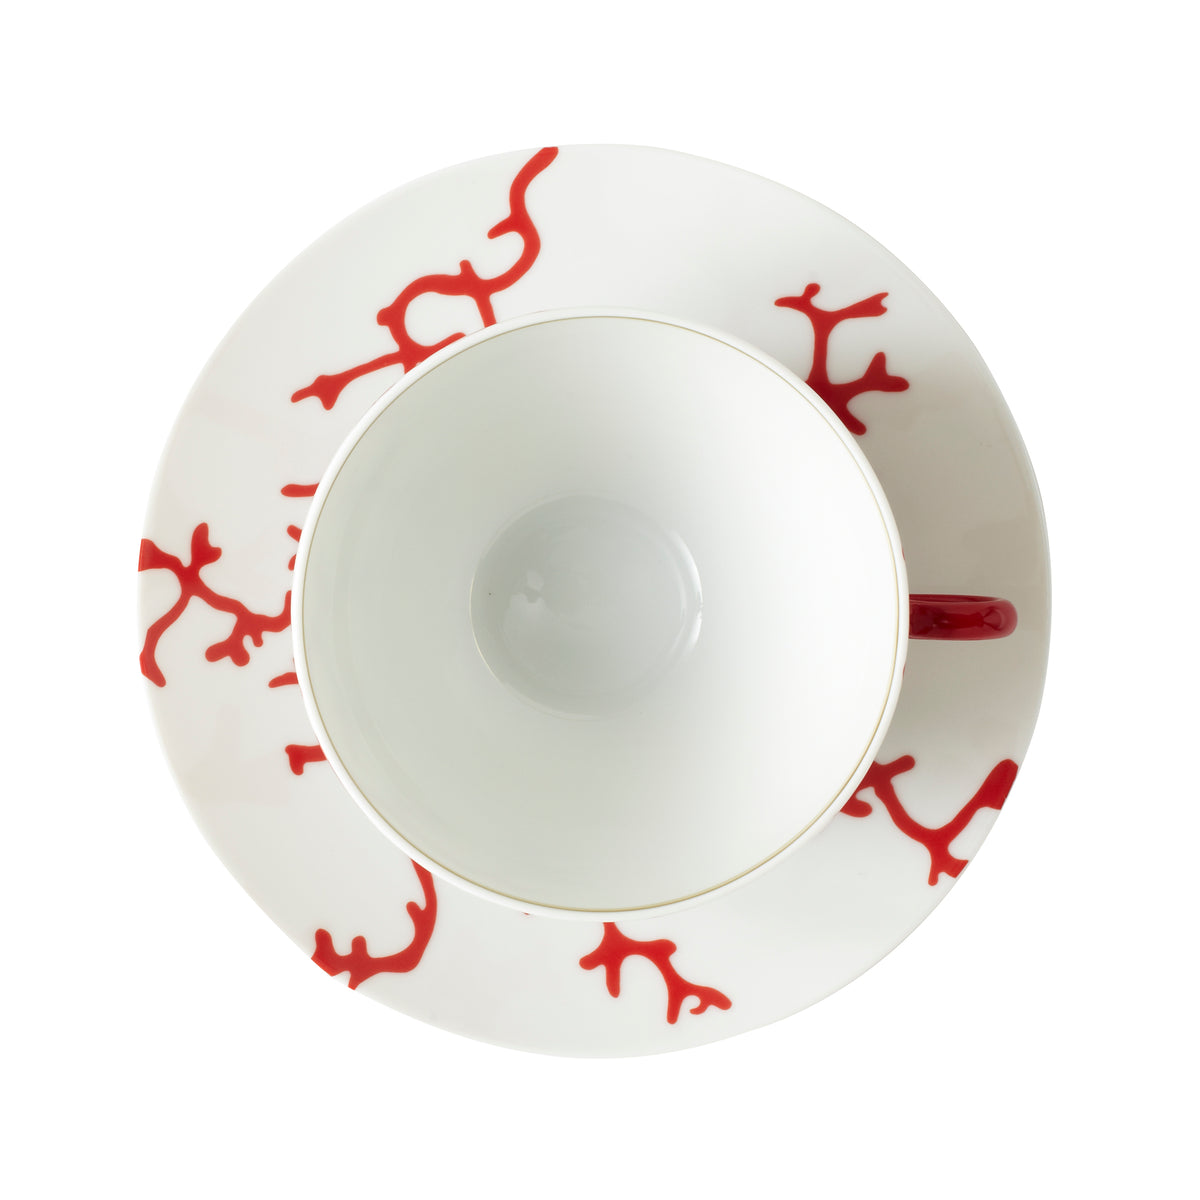 Cristobal Coral Breakfast Porcelain Cup and Saucer